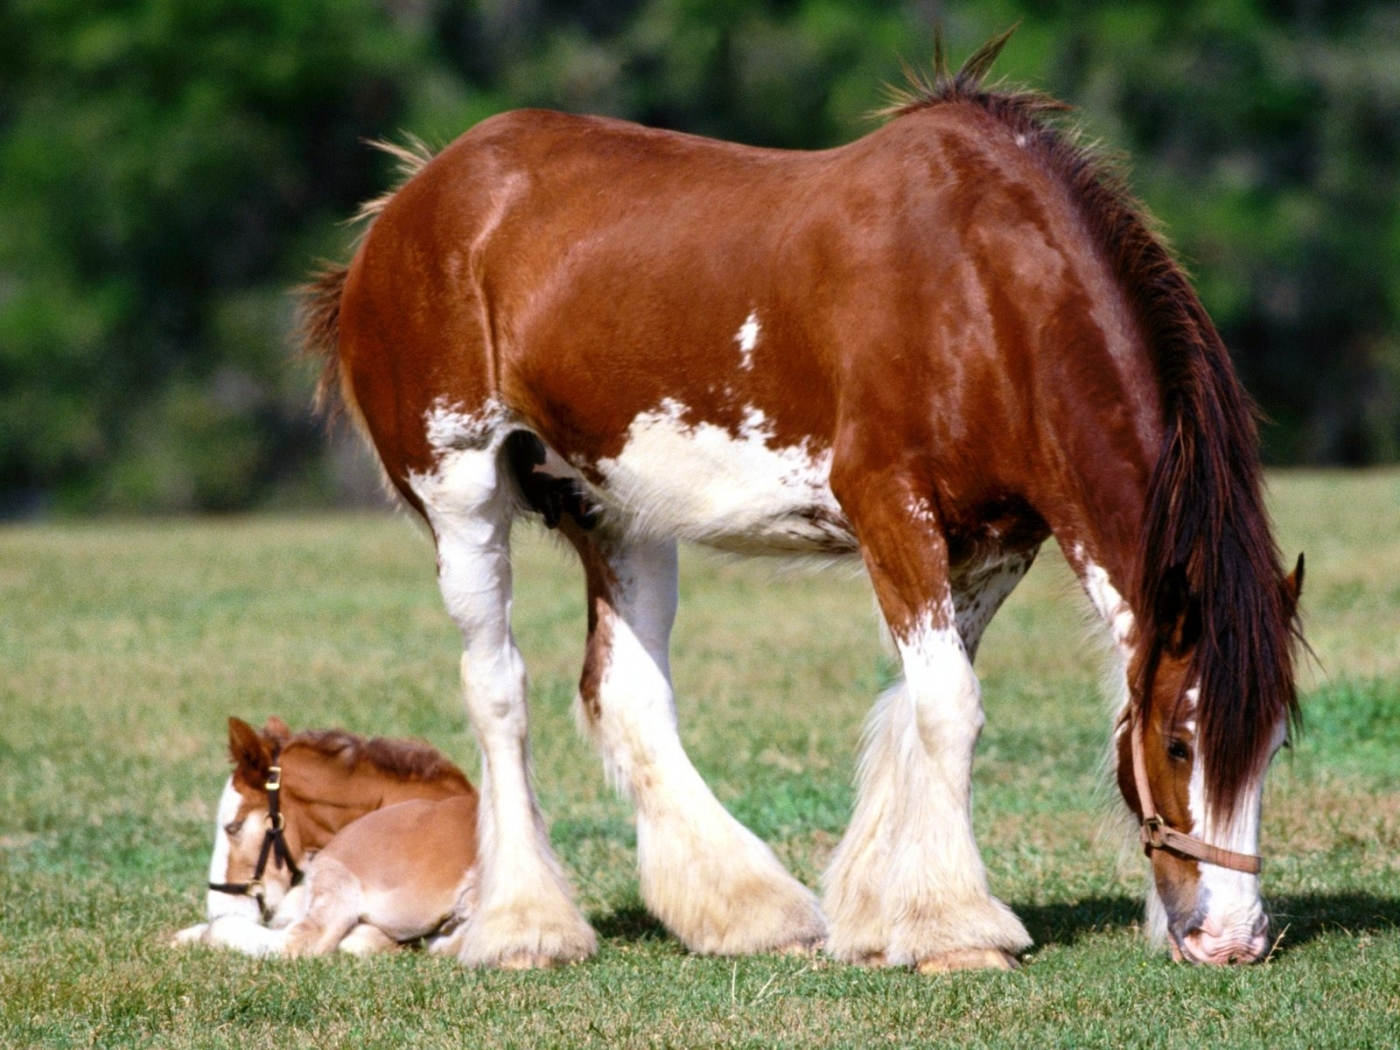 44810 download wallpaper Animals, Horses screensavers and pictures for free